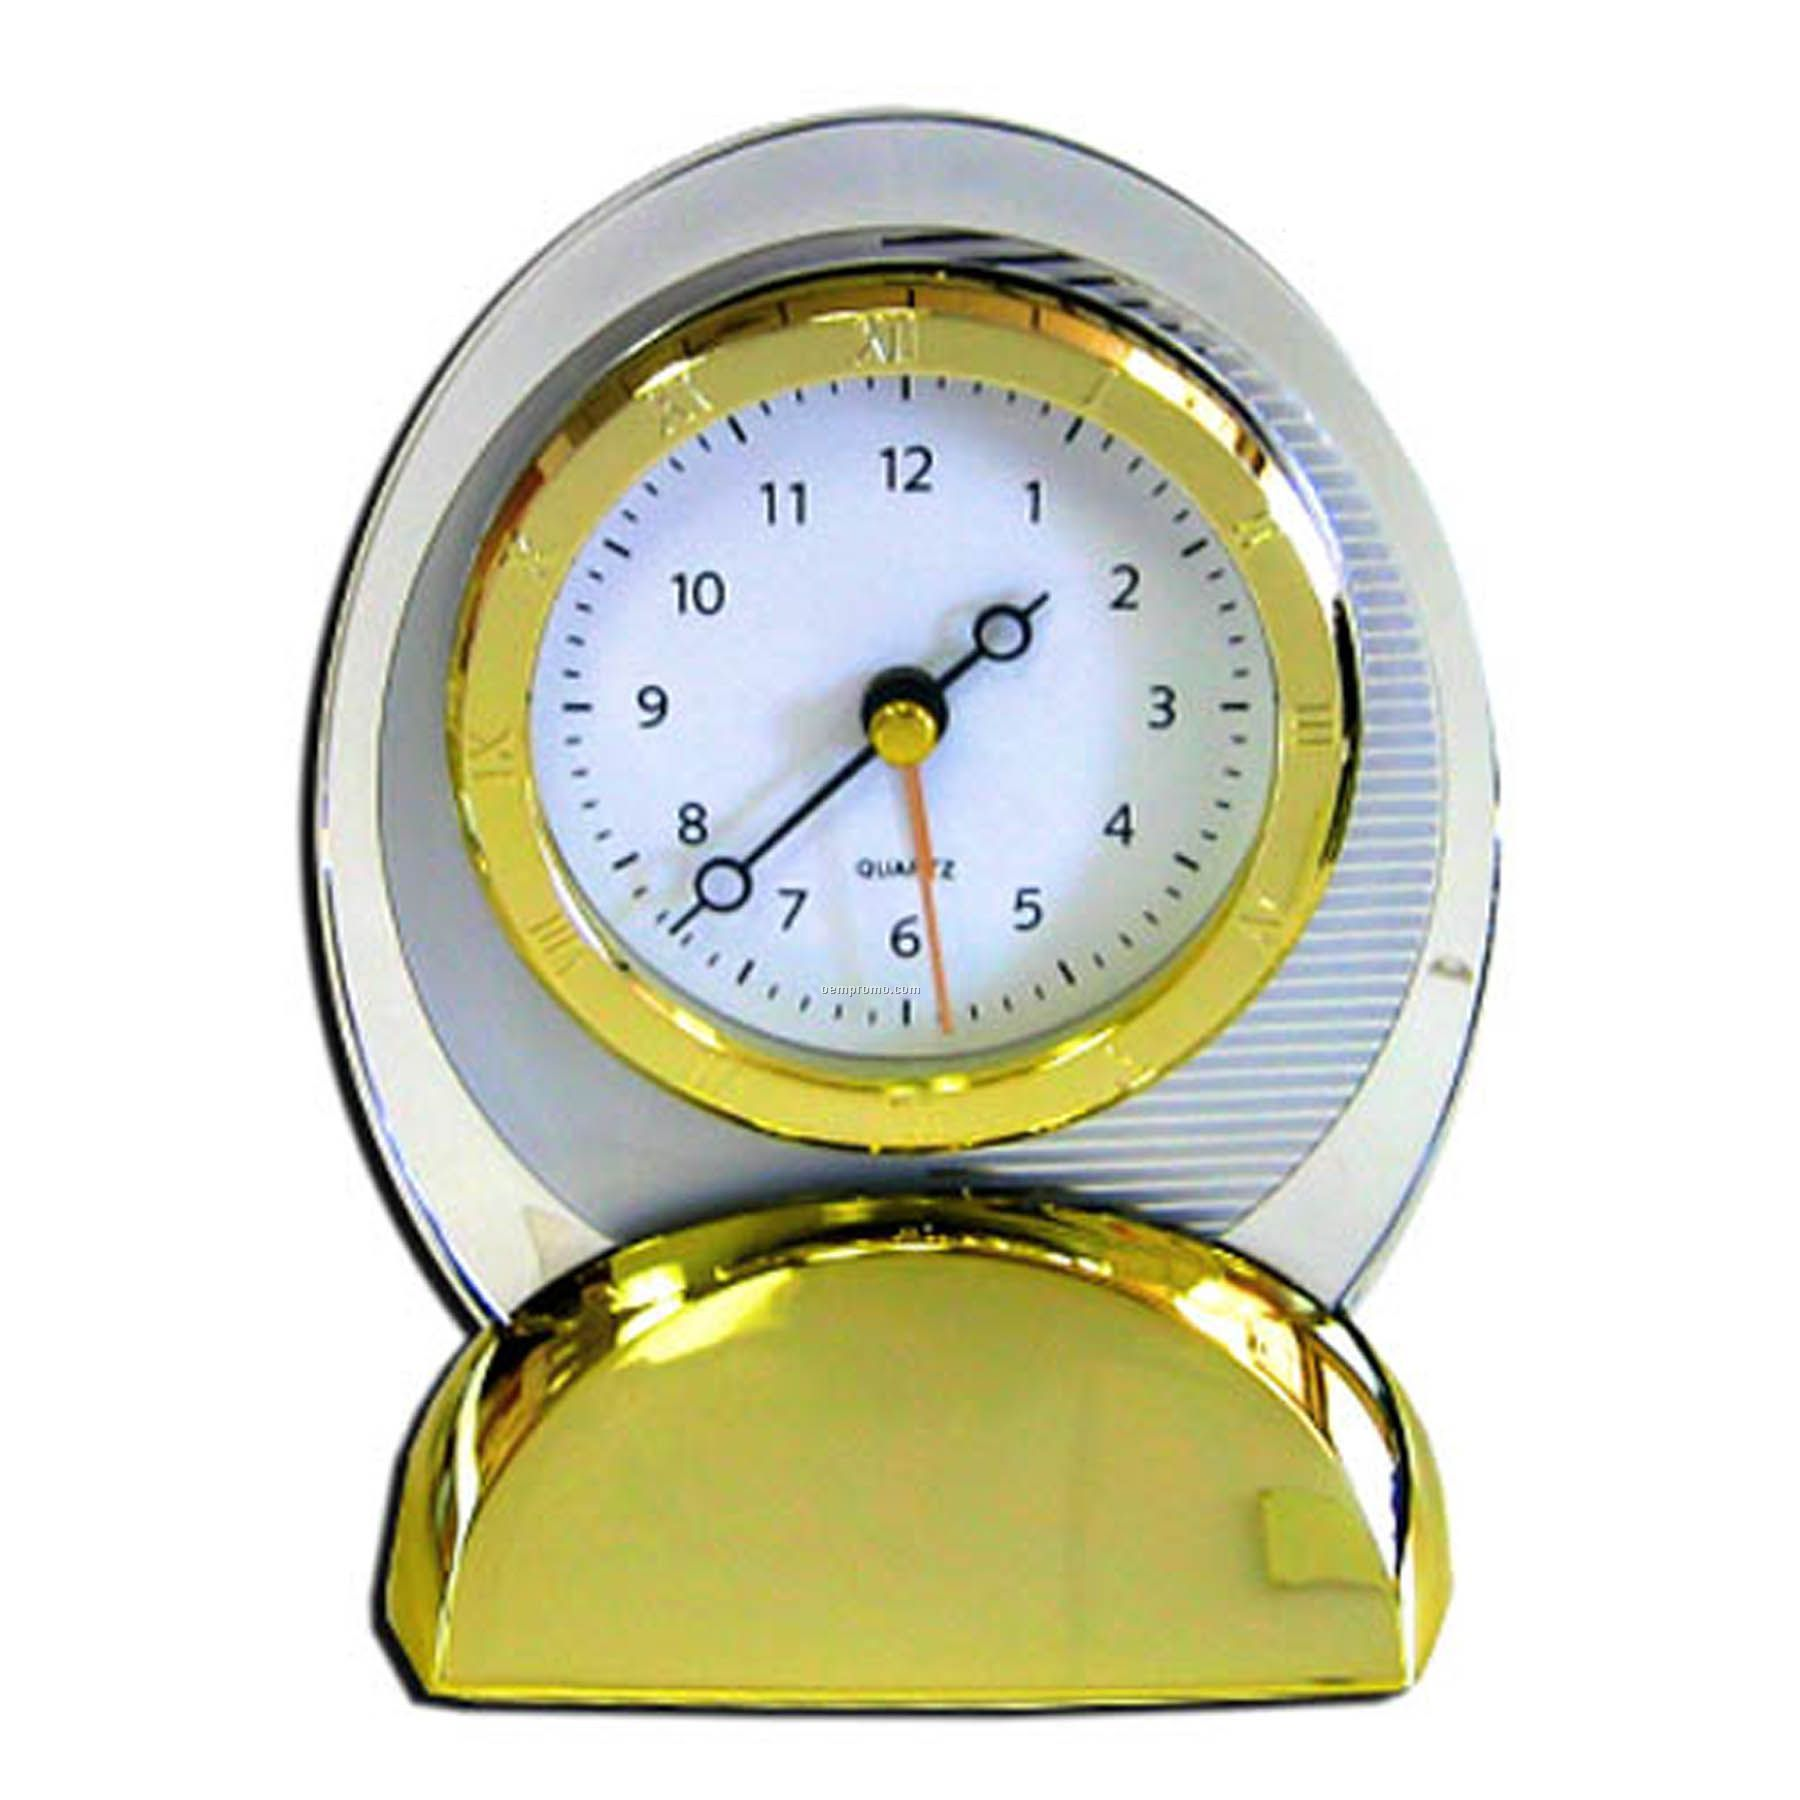 Oval Quartz Movement Alarm Clock With Sweep Second Hand